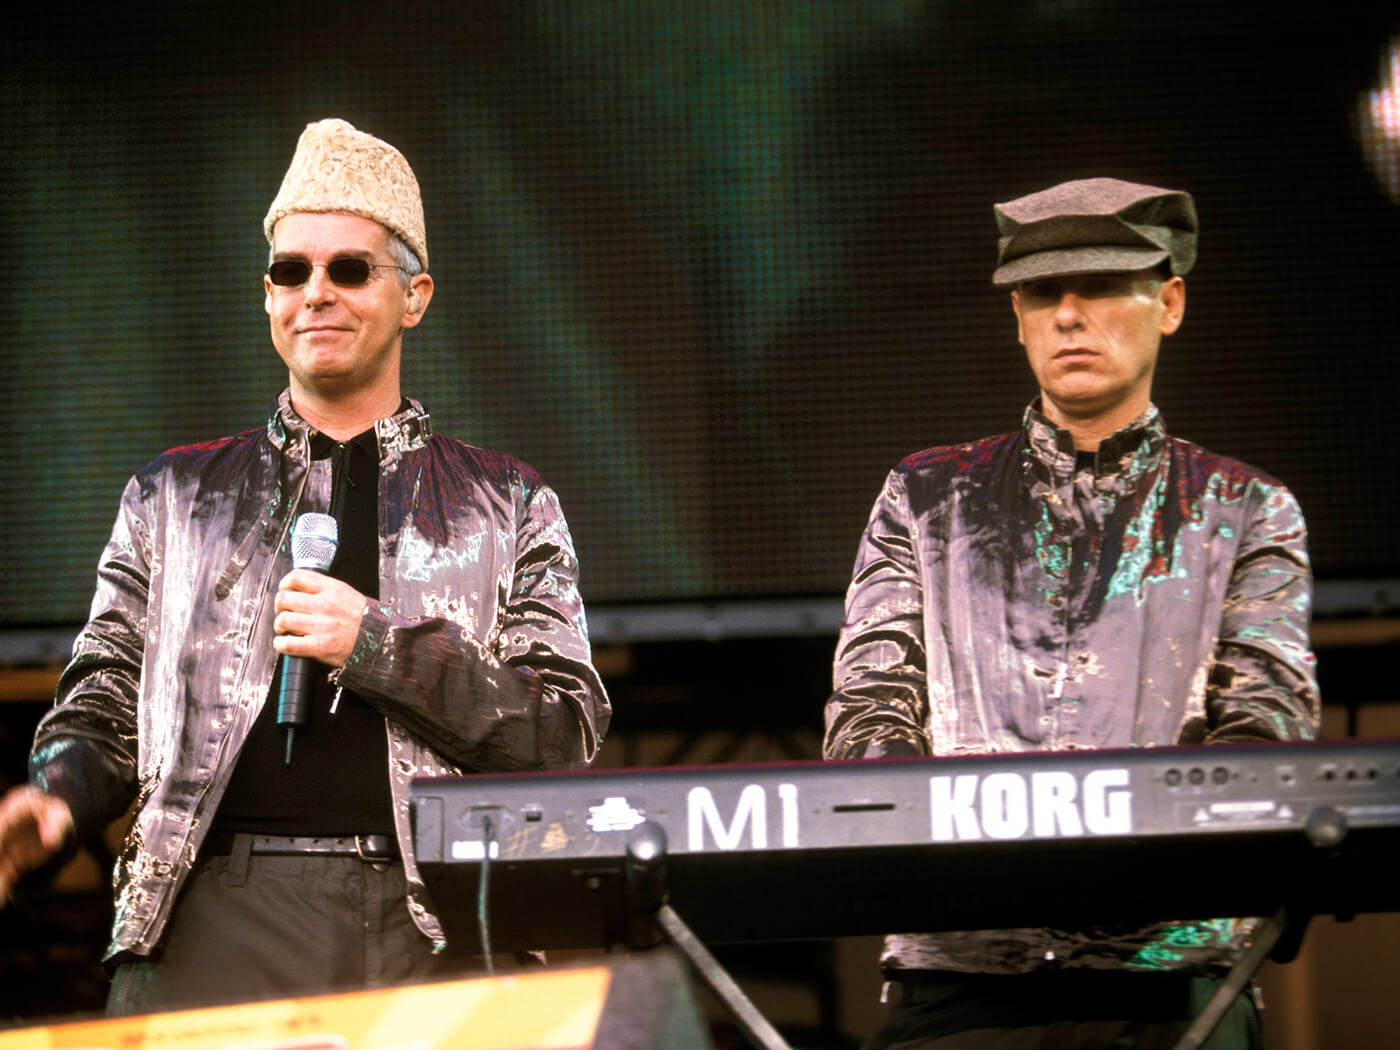 The Pet Shop Boys are big lovers of the Korg M1